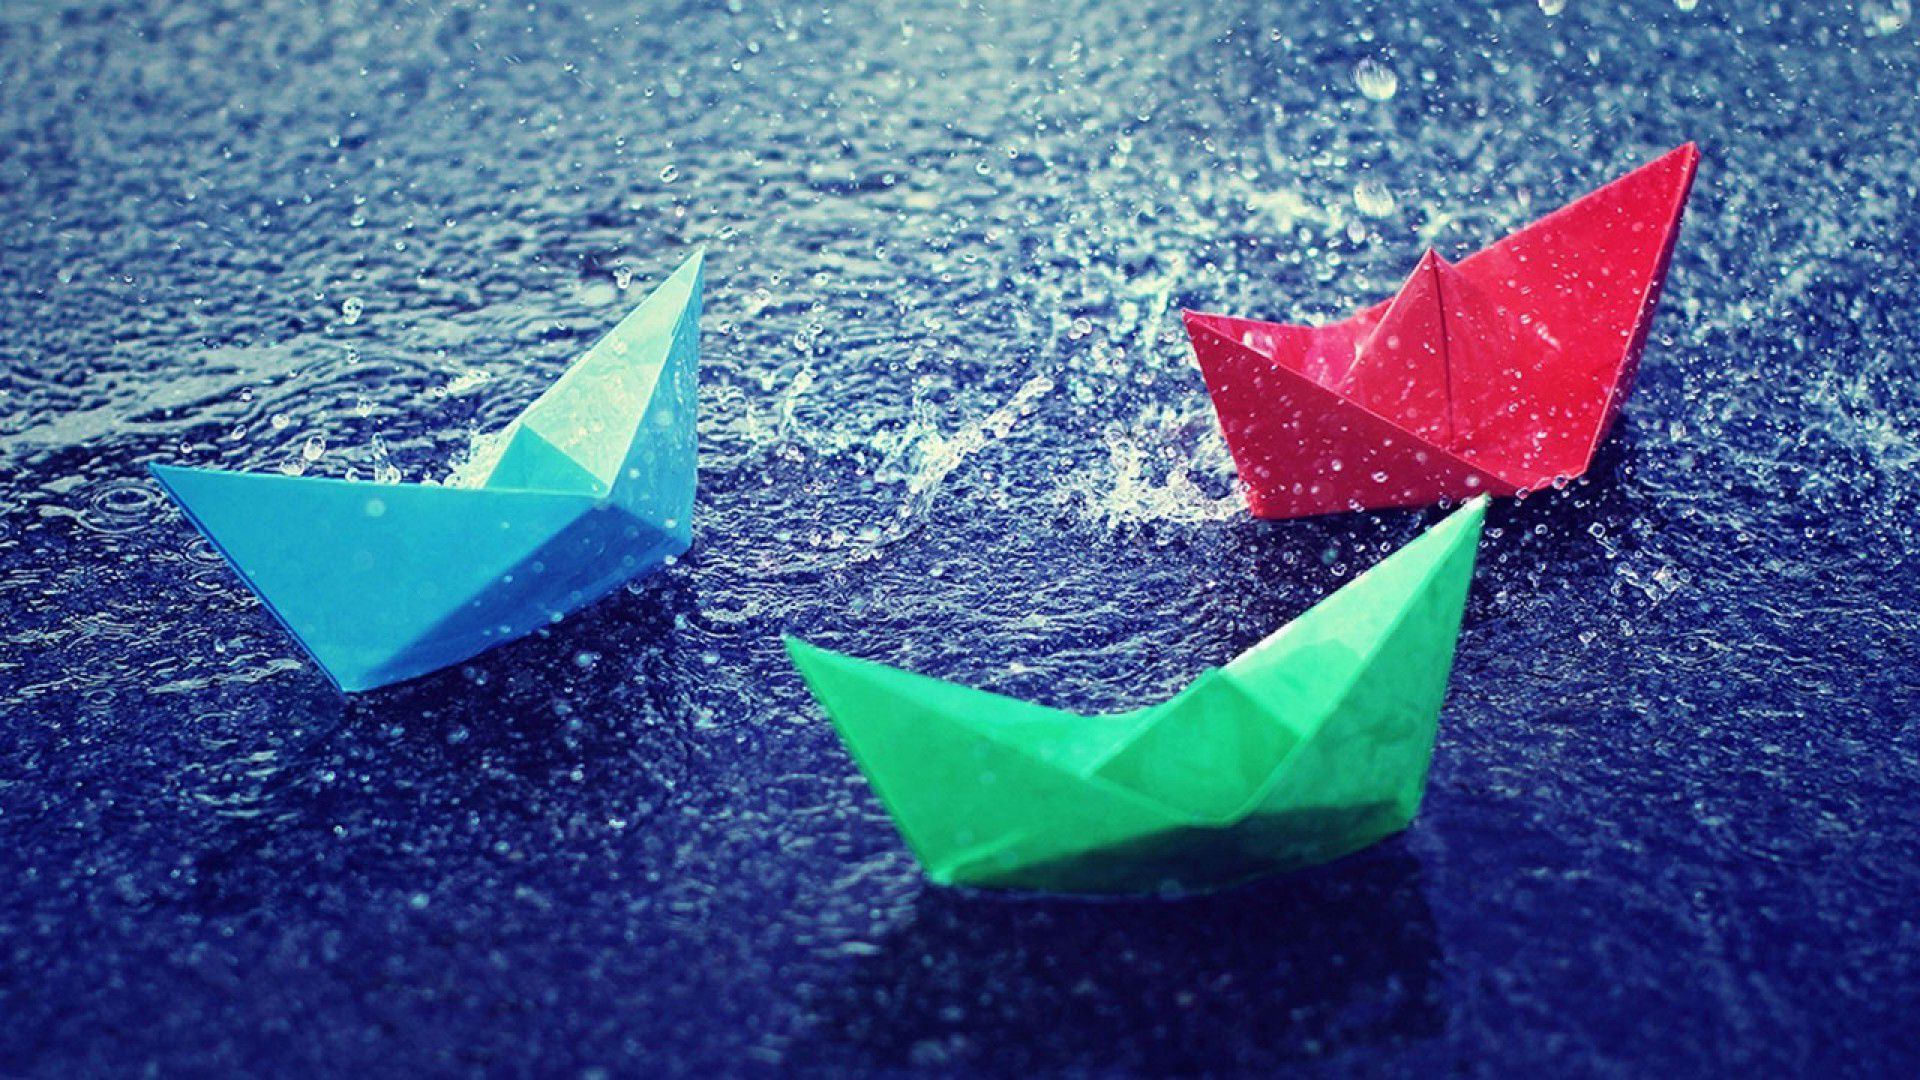 Hd wallpaper rain - Find This Pin And More On Hd Wallpapers By Receptynakazhdyjden